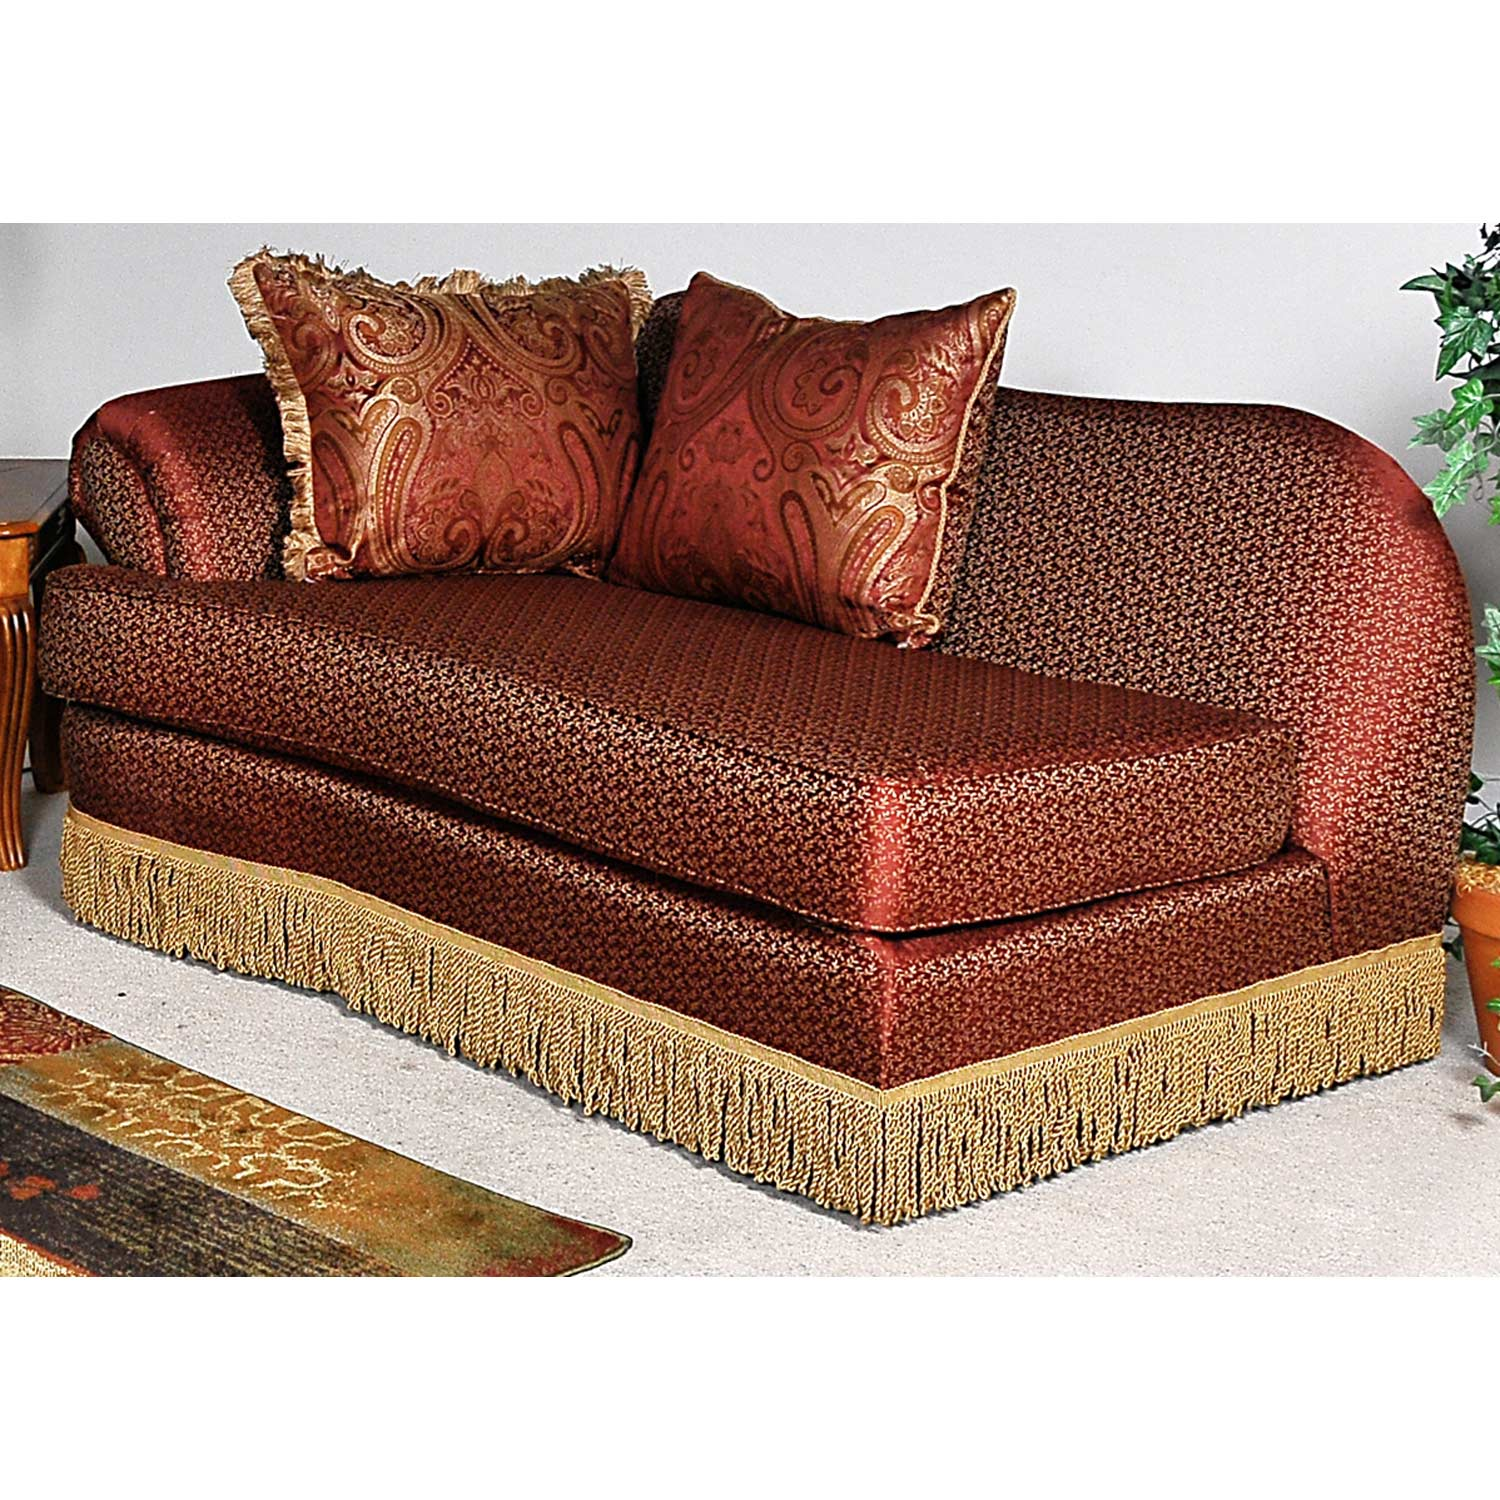 bedroom chair with skirt ethan allen wicker royal chaise lounge fringed baring rust fabric